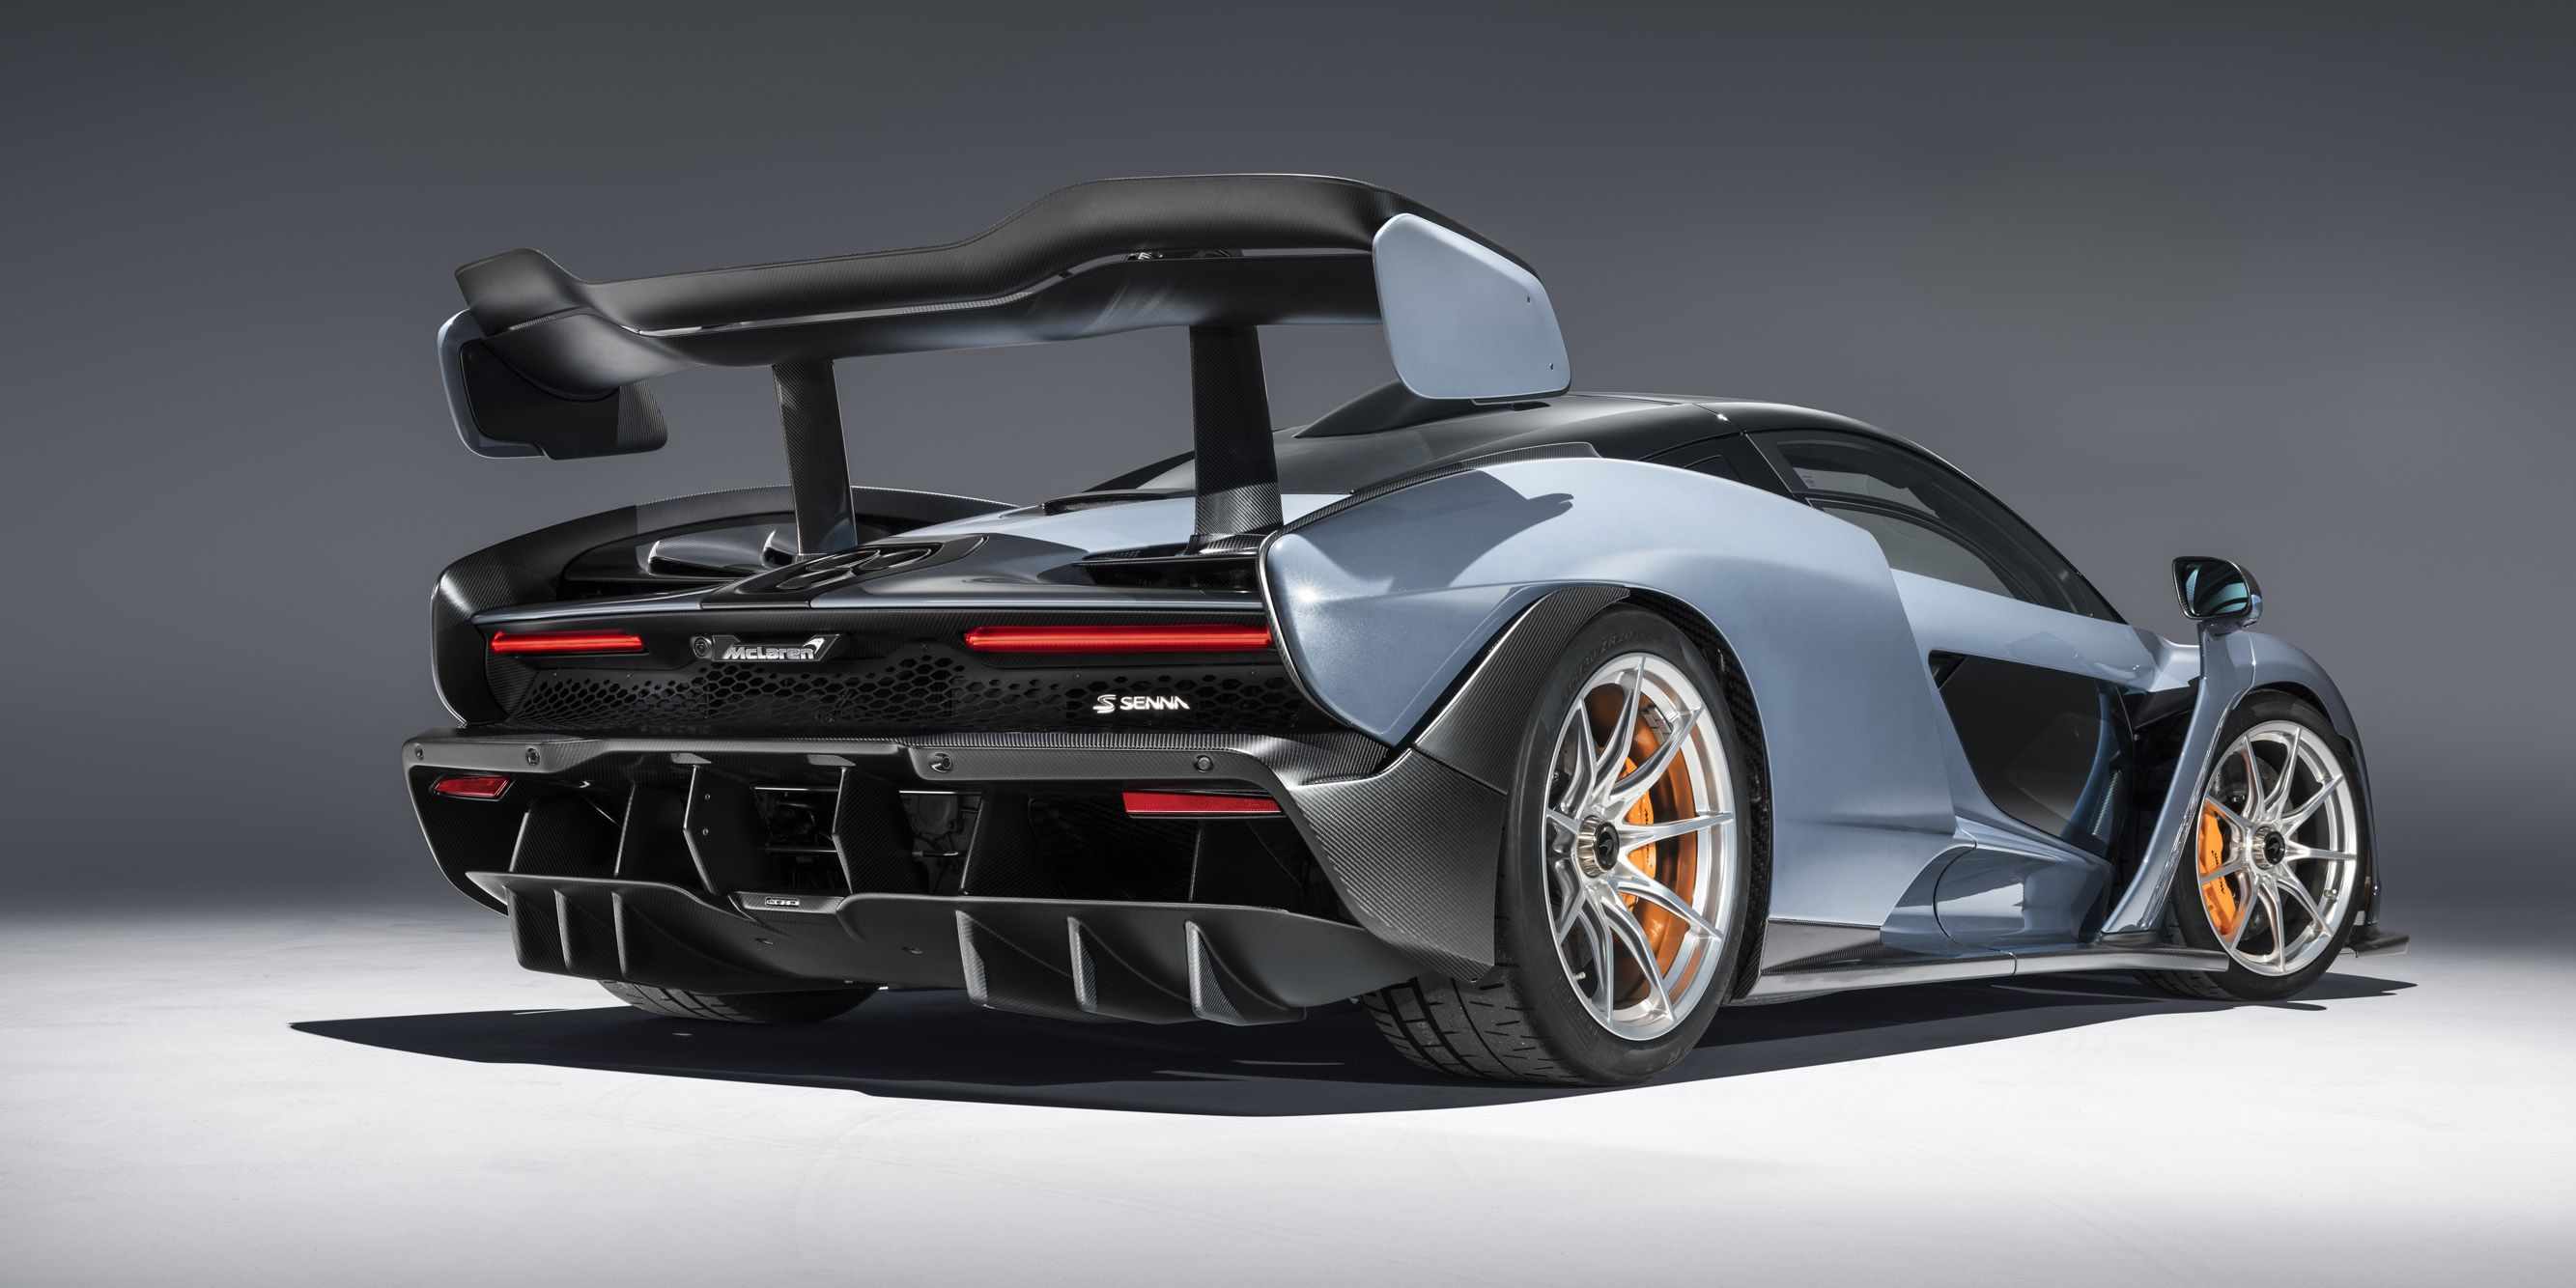 11 New Cars That Come With the Craziest Wings